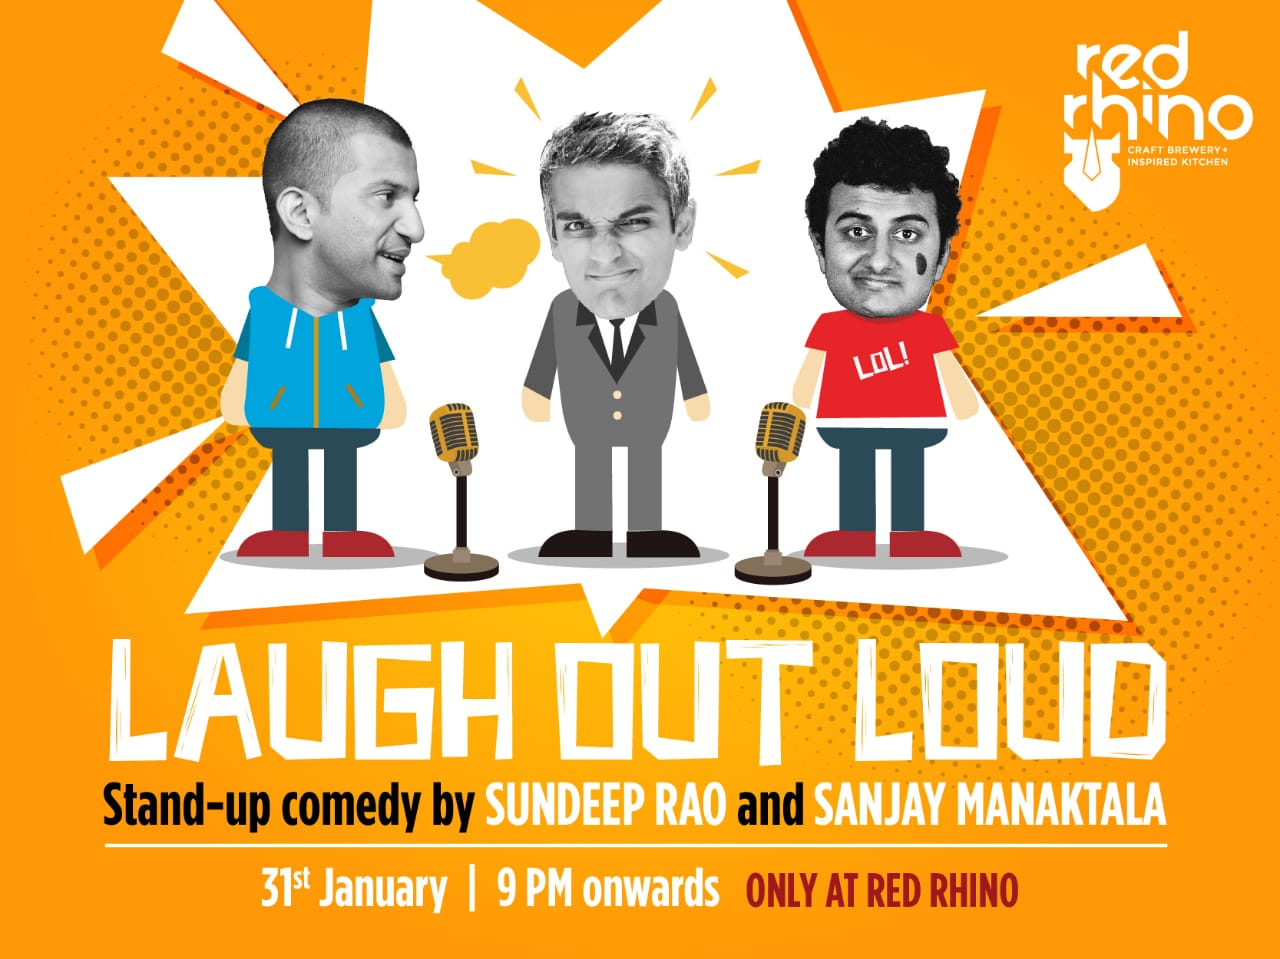 COMEDY NIGHT ON THURSDAY